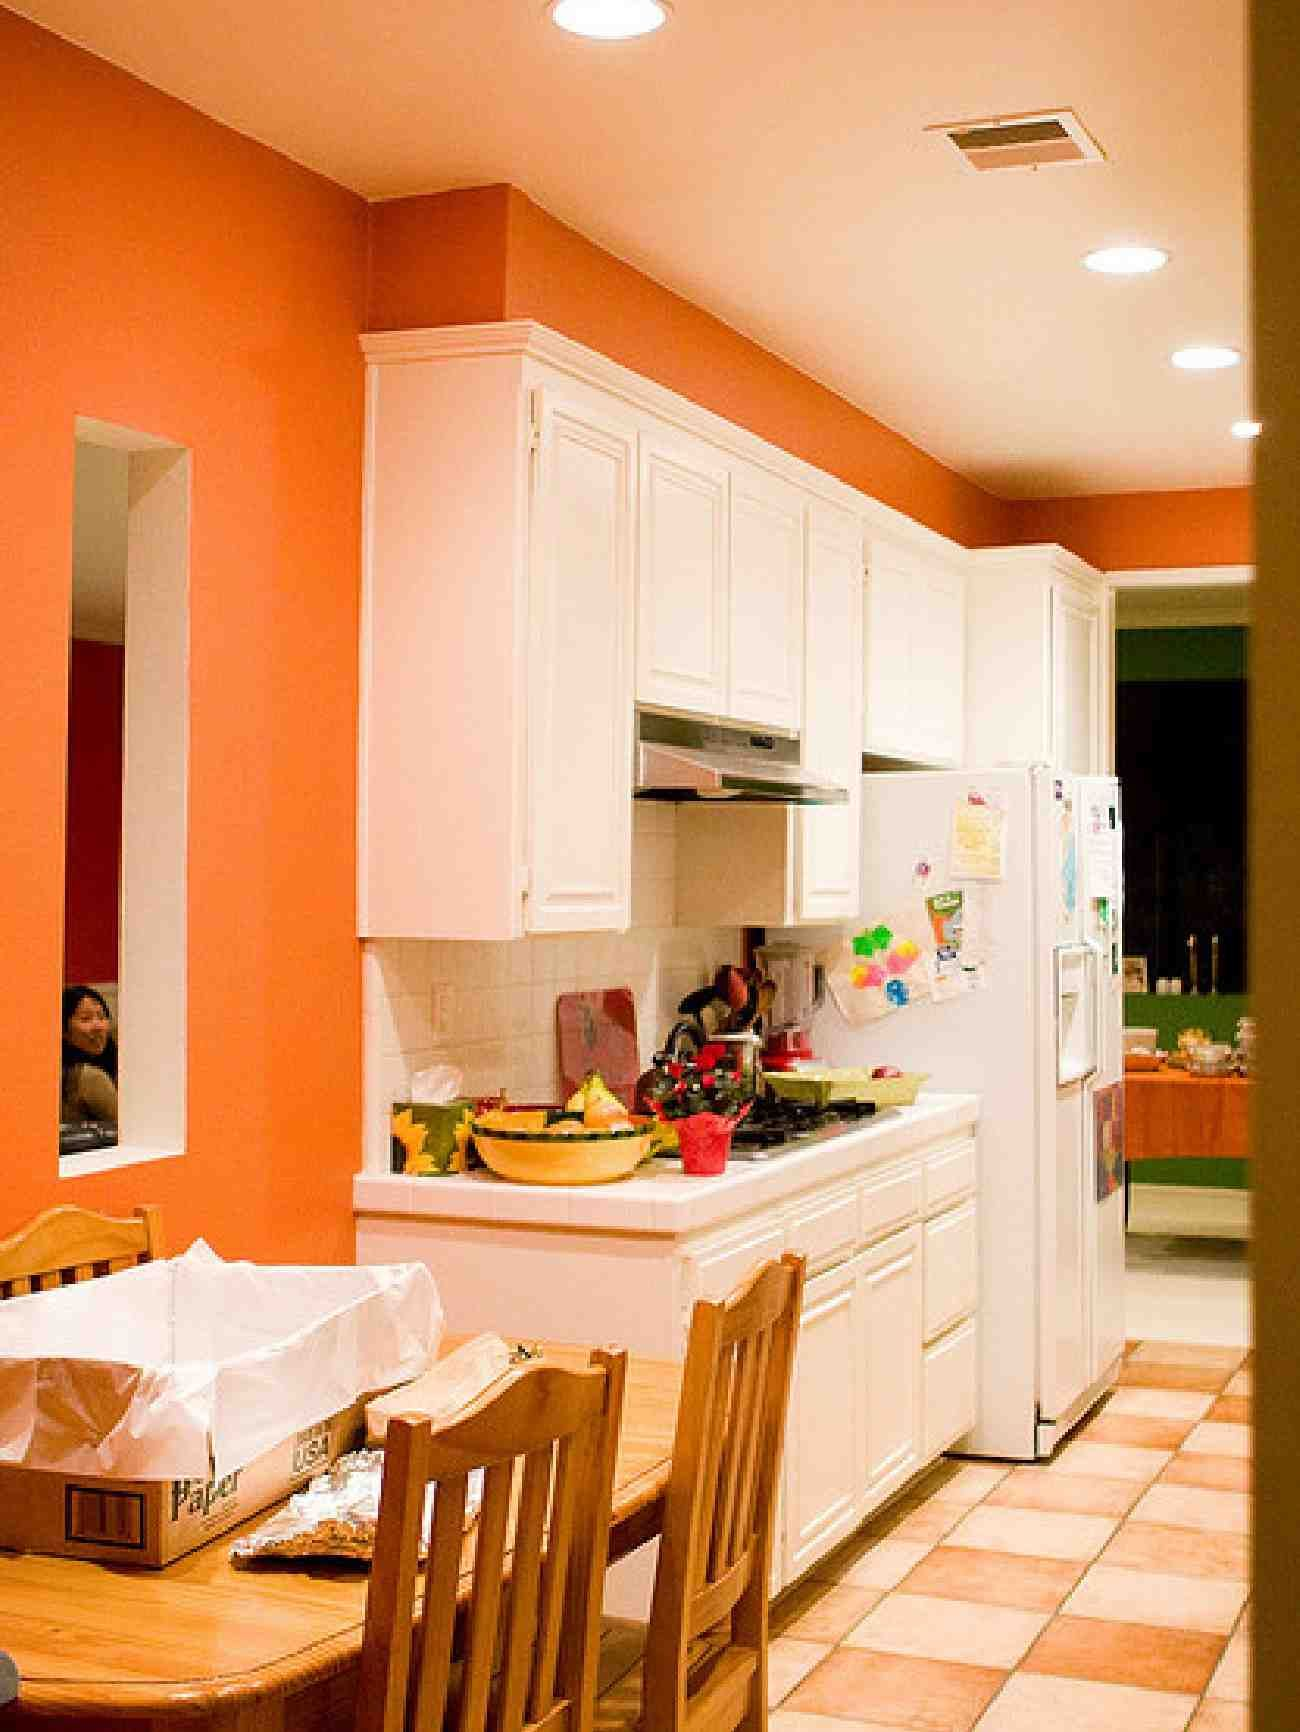 Bright Kitchen Color Orange Painted Kitchen Walls Google Search Kitchen Ideas